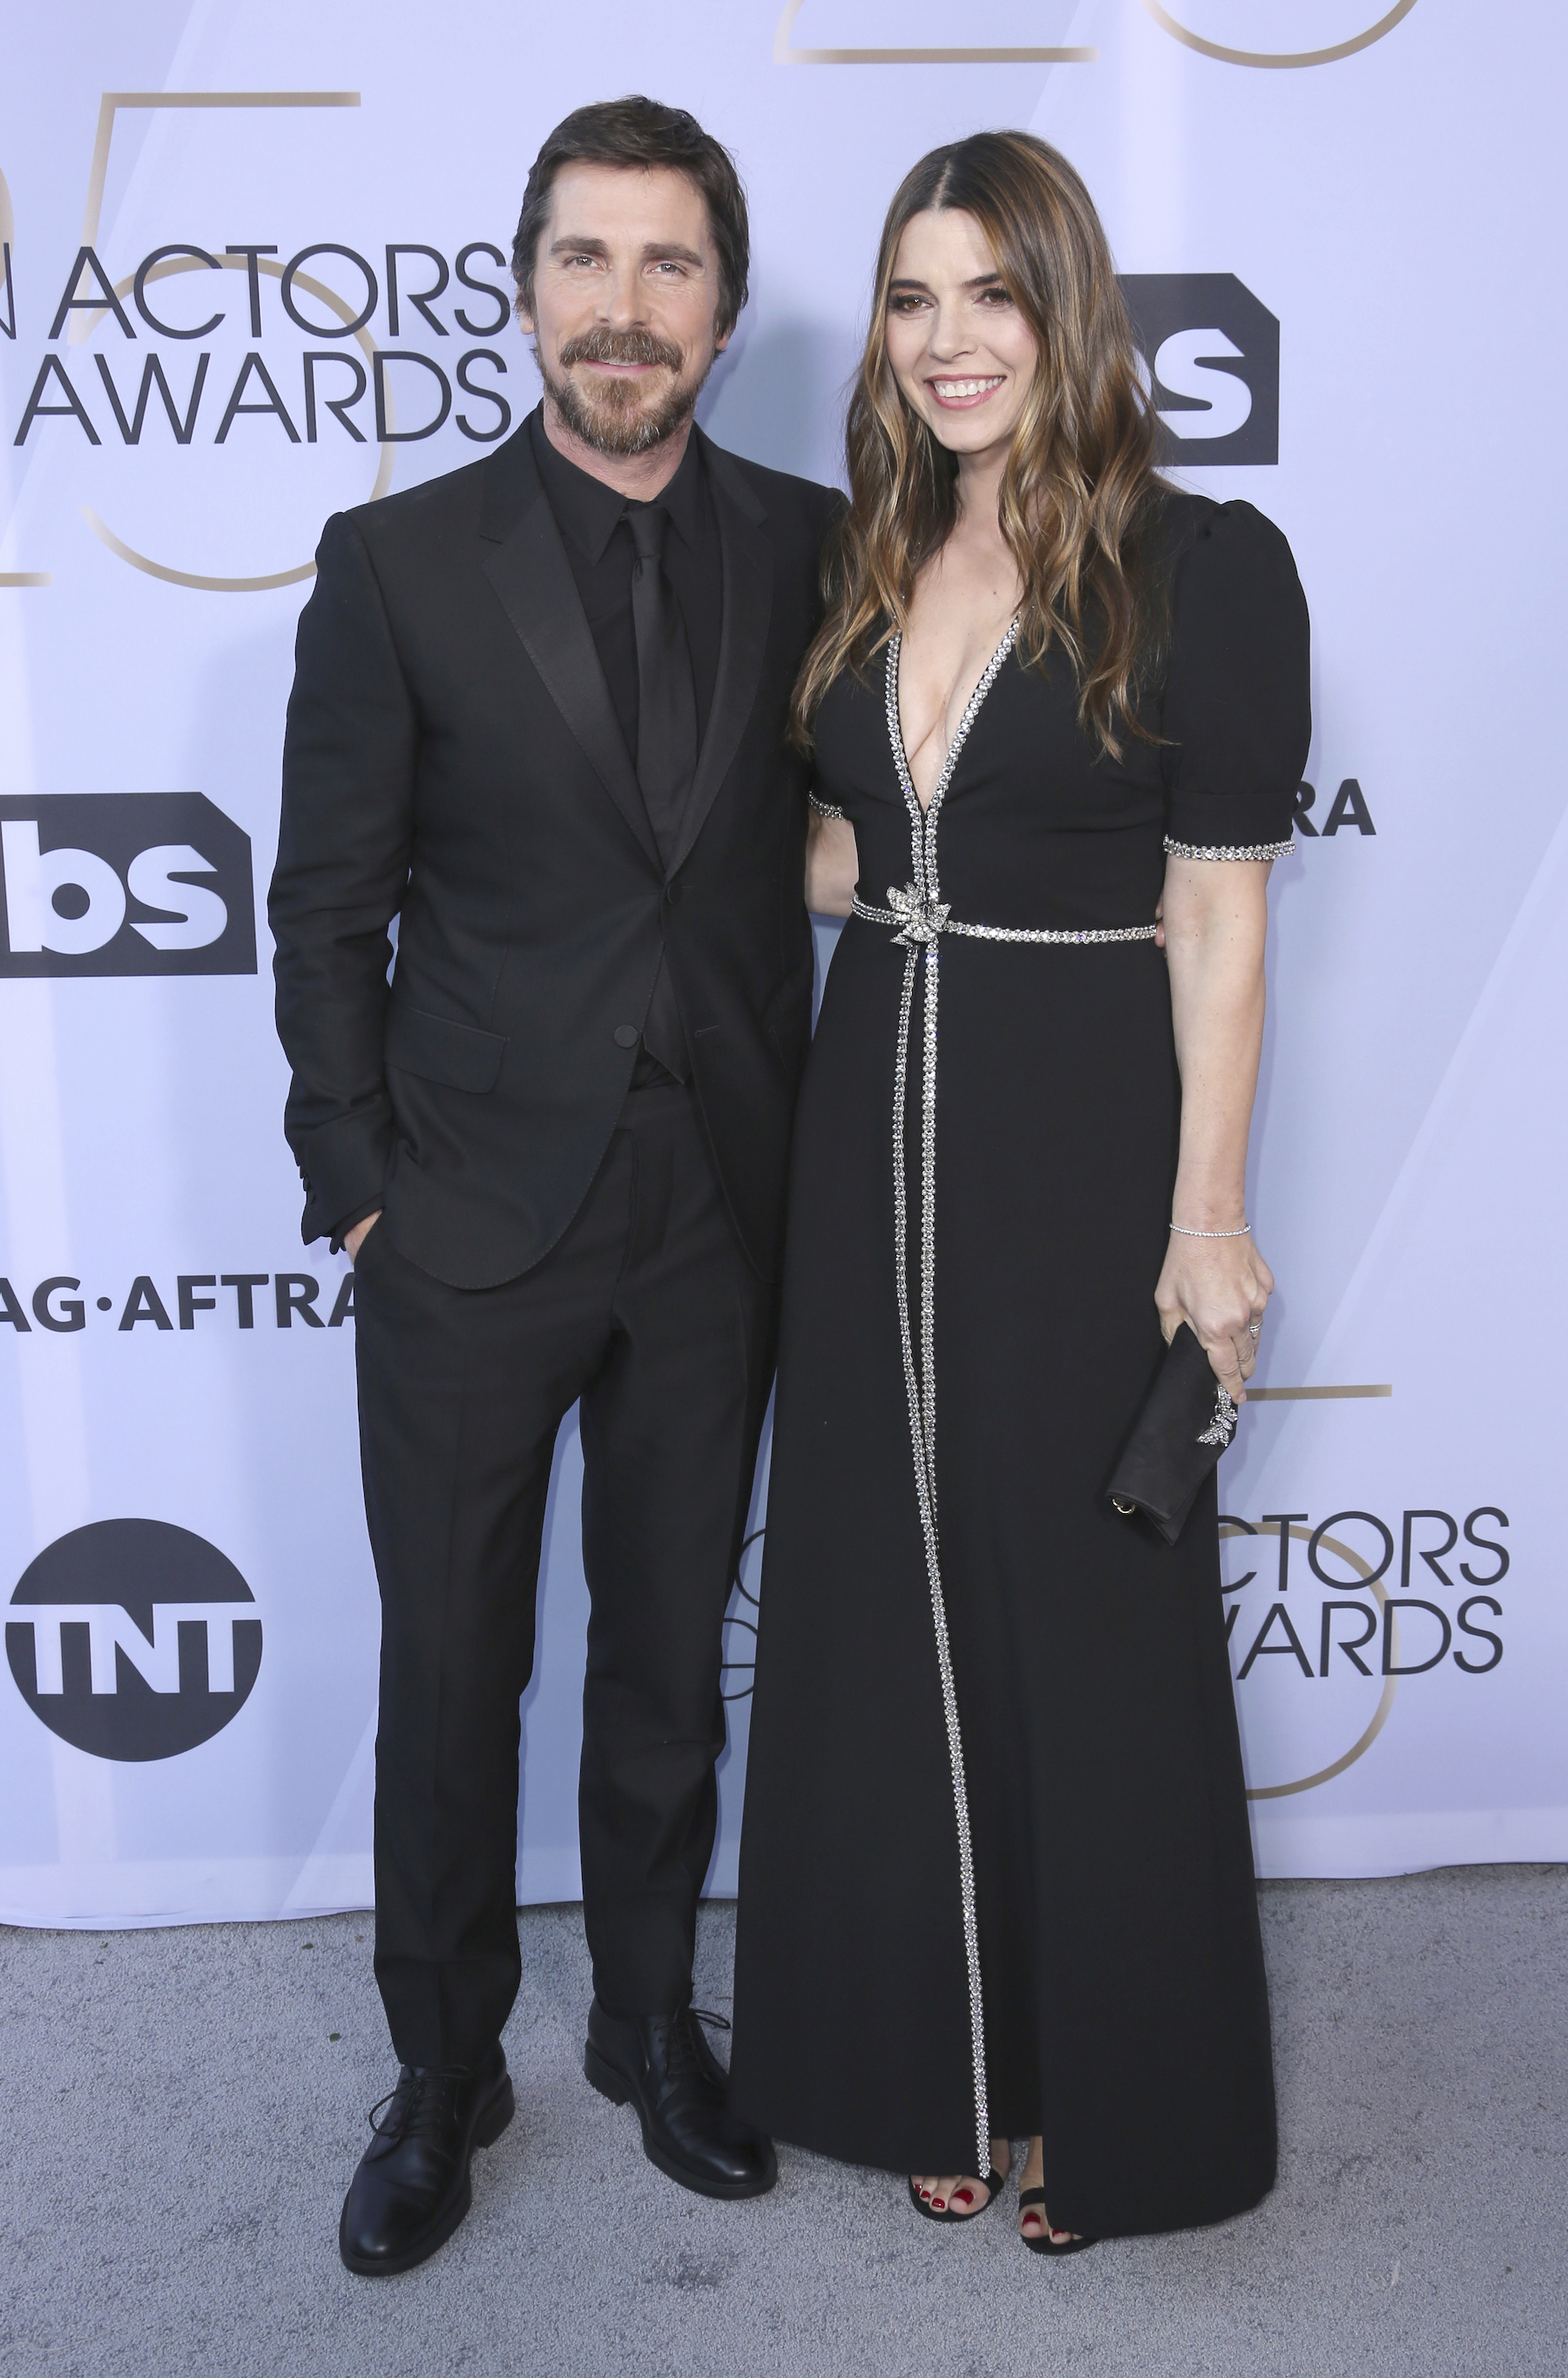 <div class='meta'><div class='origin-logo' data-origin='AP'></div><span class='caption-text' data-credit='Willy Sanjuan/Invision/AP'>Christian Bale, left, and Sibi Blazic arrive at the 25th annual Screen Actors Guild Awards at the Shrine Auditorium & Expo Hall on Sunday, Jan. 27, 2019, in Los Angeles.</span></div>